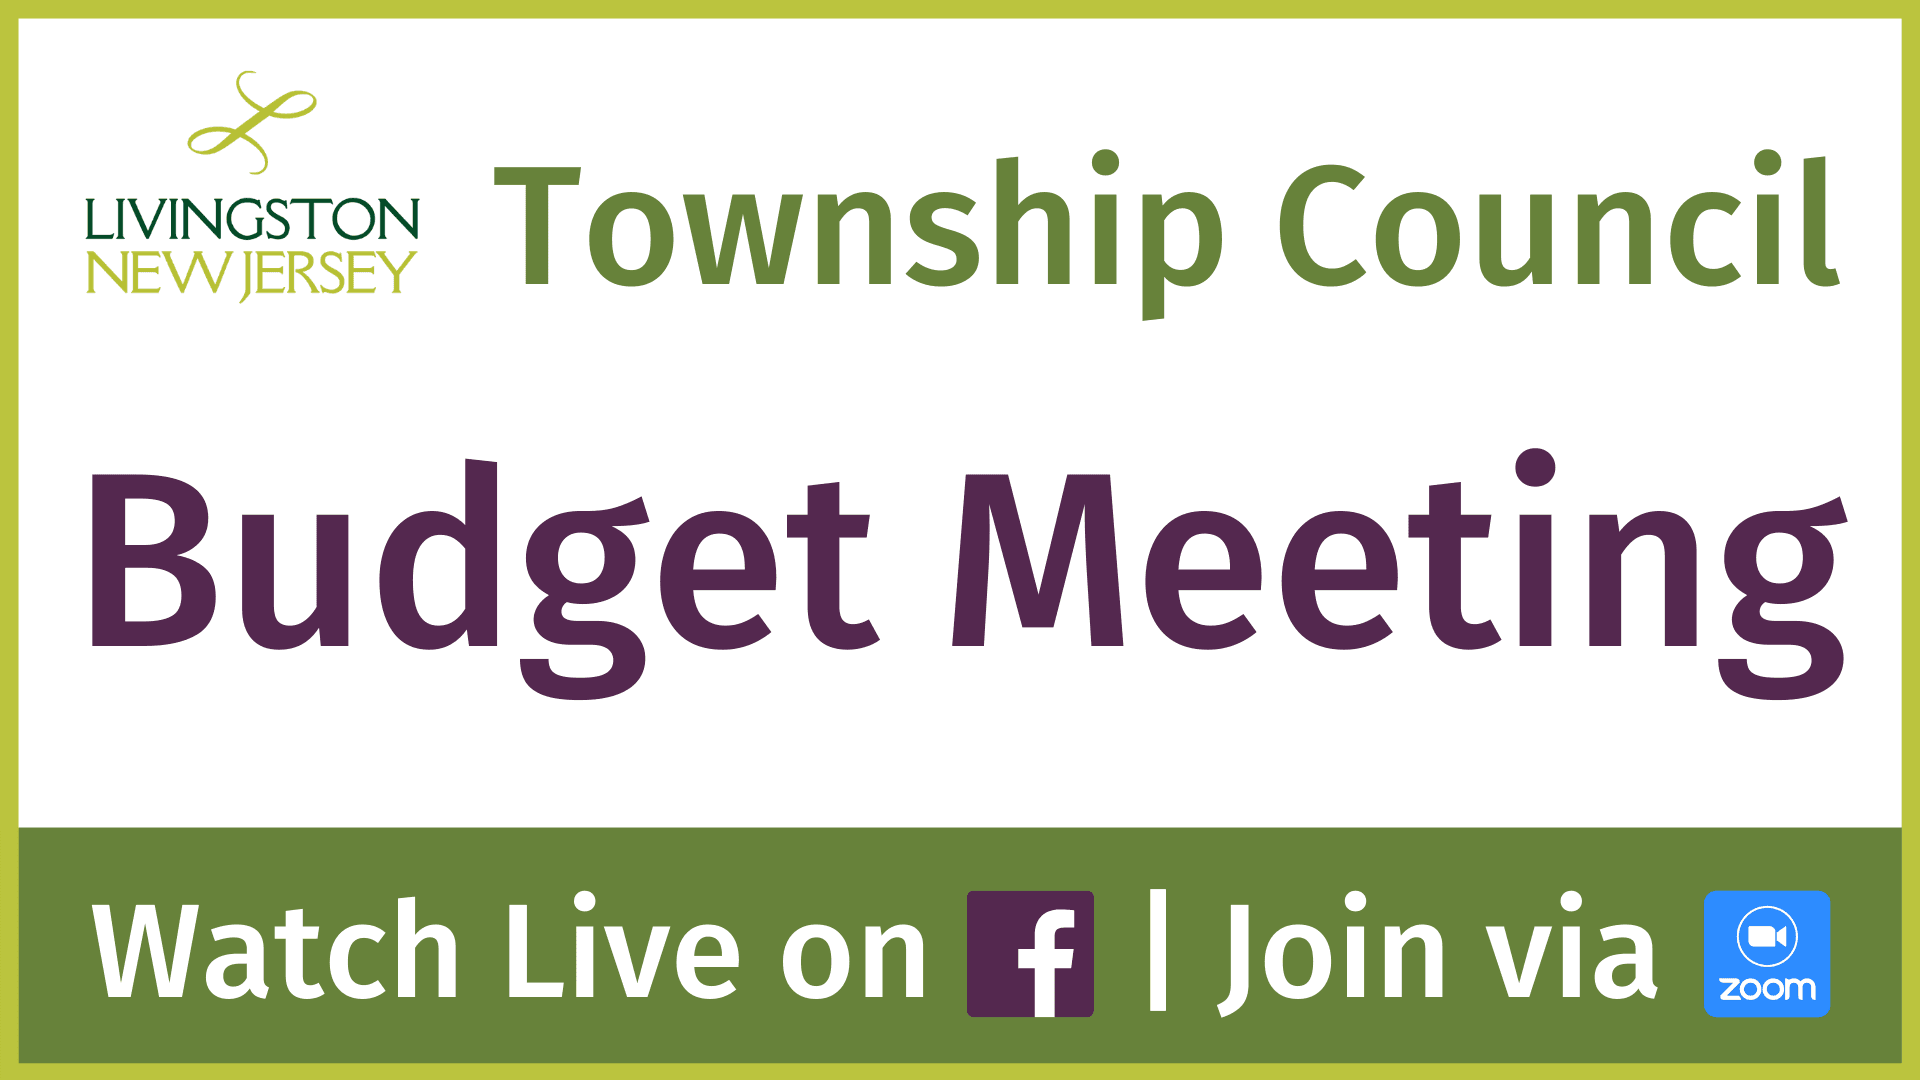 Livingston Township Council Budget meeting. Watch live on Facebook | Join via Zoom